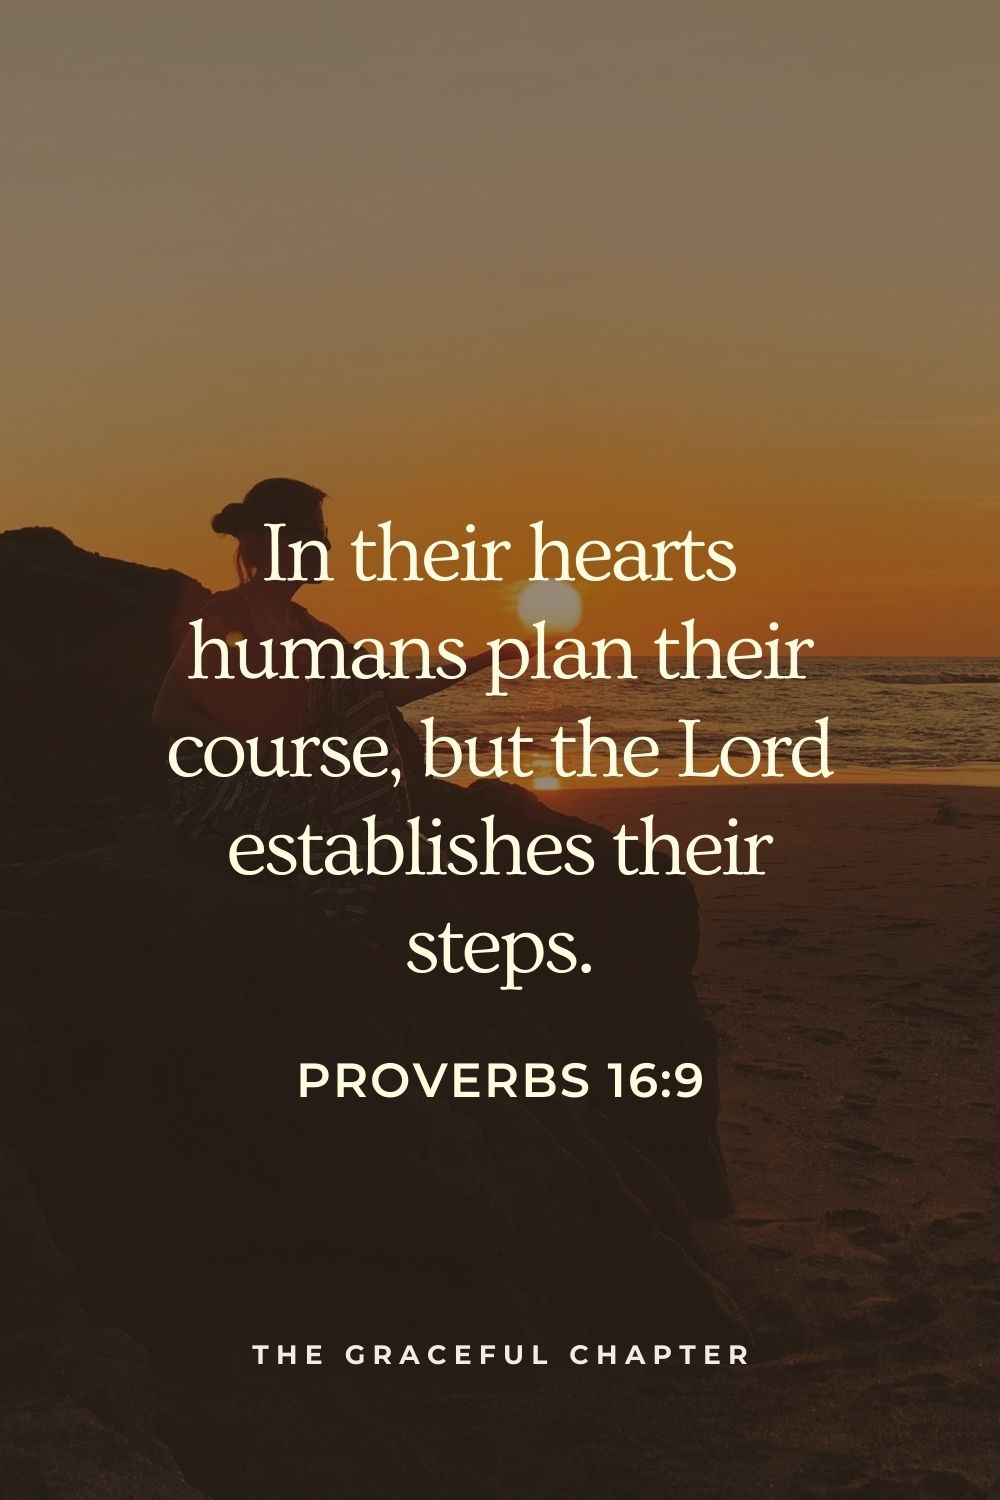 In their hearts, humans plan their course, but the Lord establishes their steps.